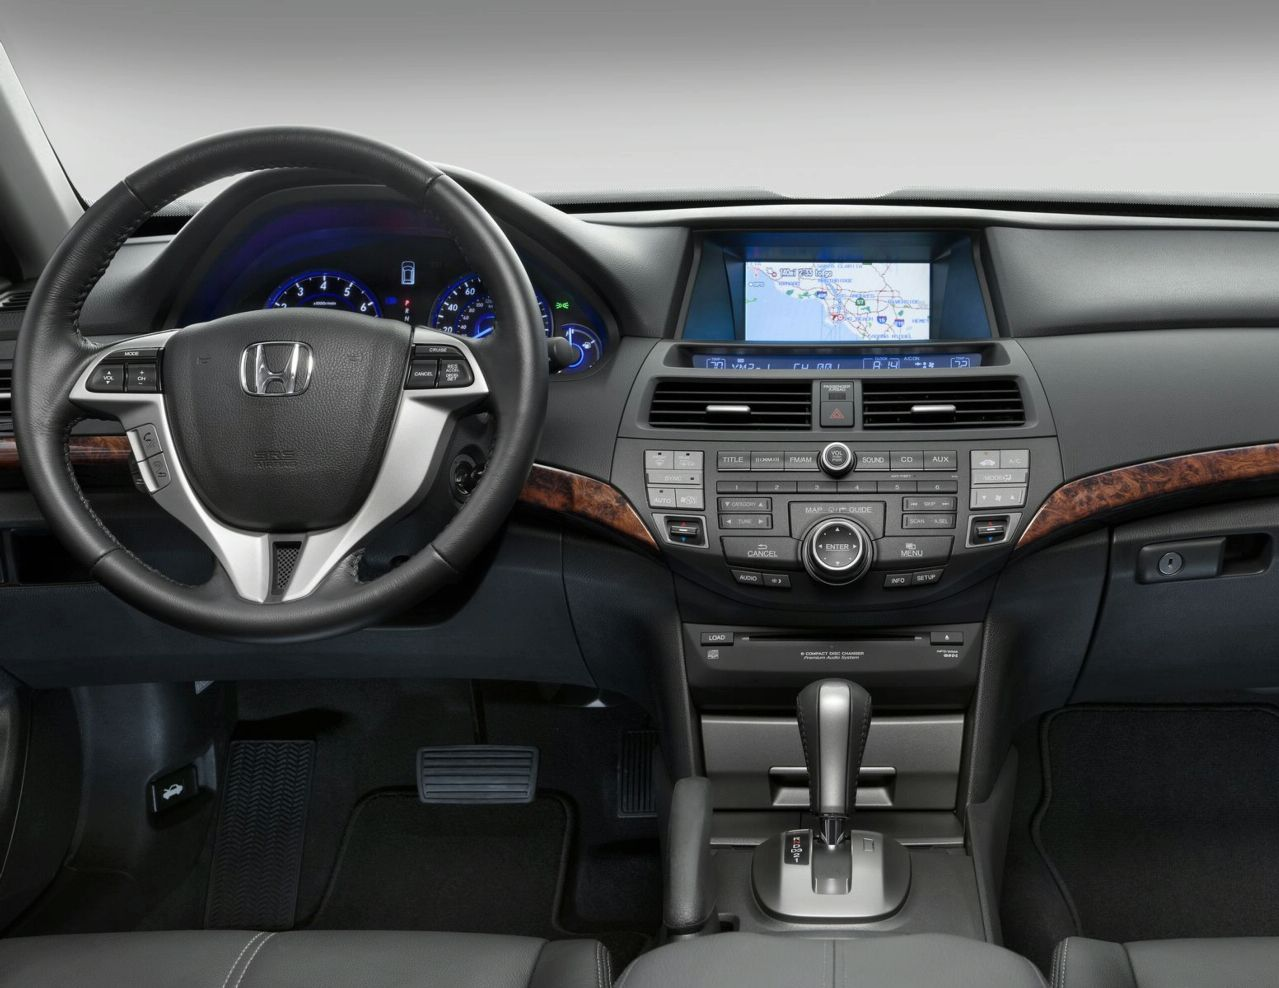 2010 Honda Crosstour Interior Pics Revealed Autoevolution